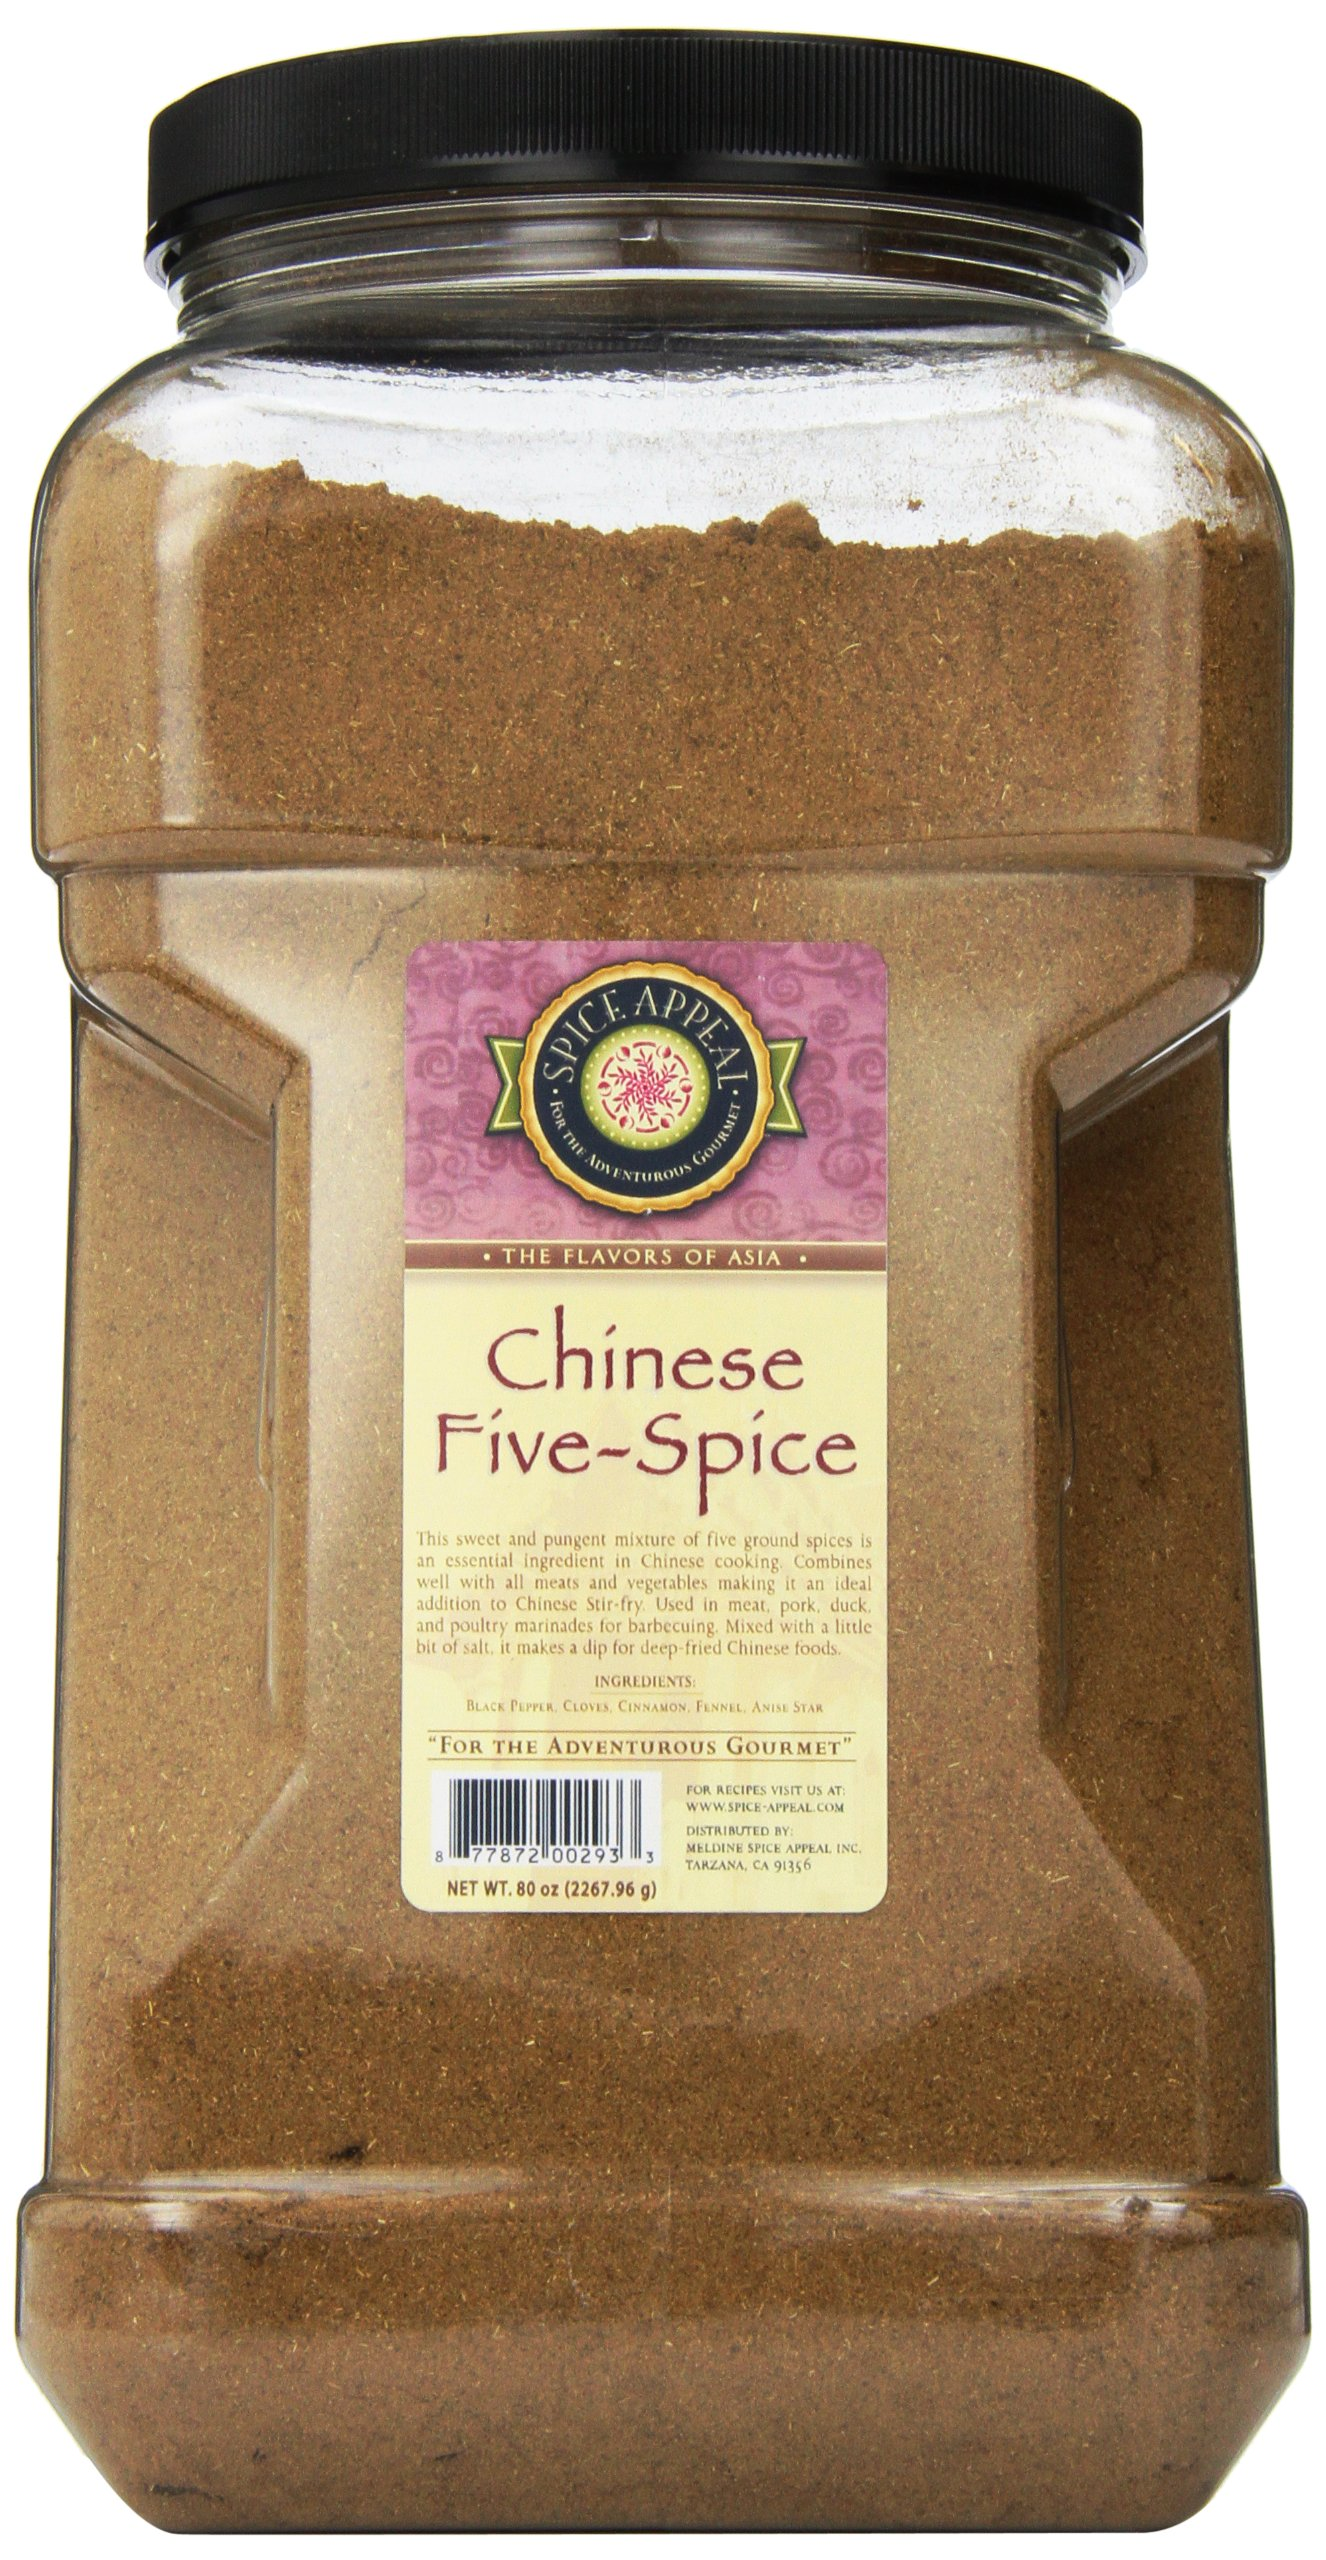 Spice Appeal Chinese Five-Spice, 5 lbs by Spice Appeal (Image #1)